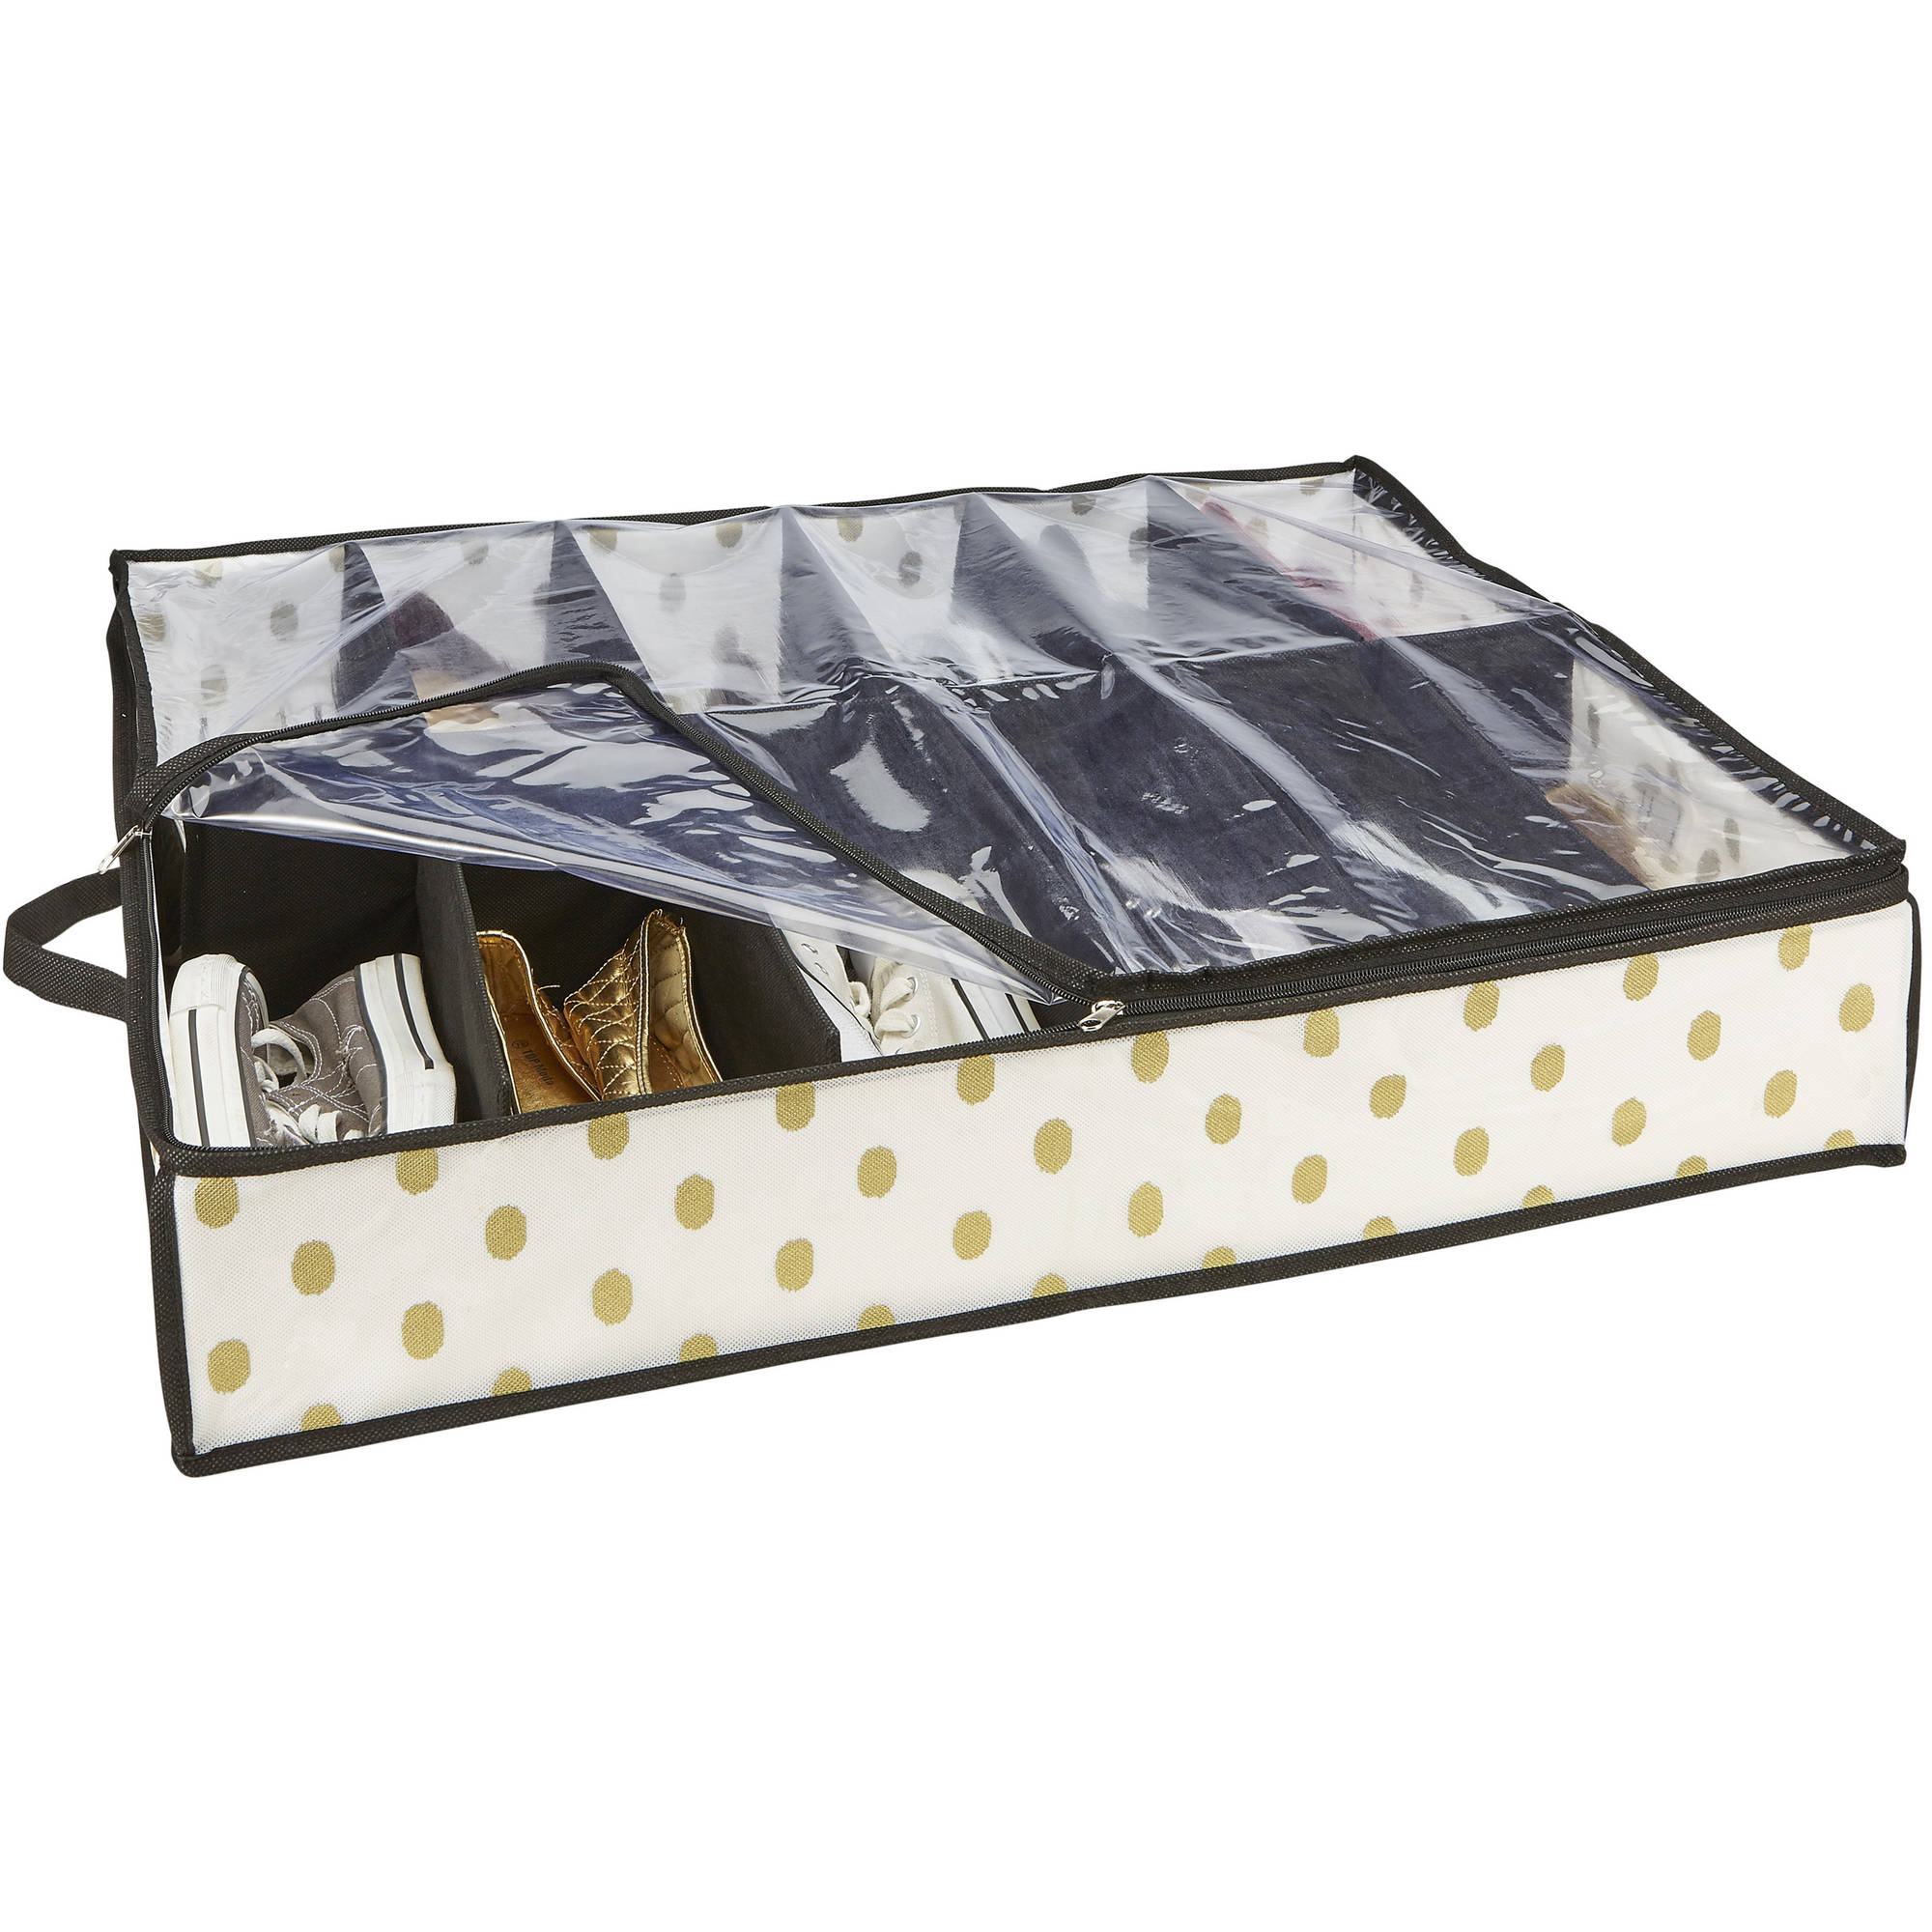 Under-the-Bed Shoe Organizer, 12 Pair, White/Gold Dot